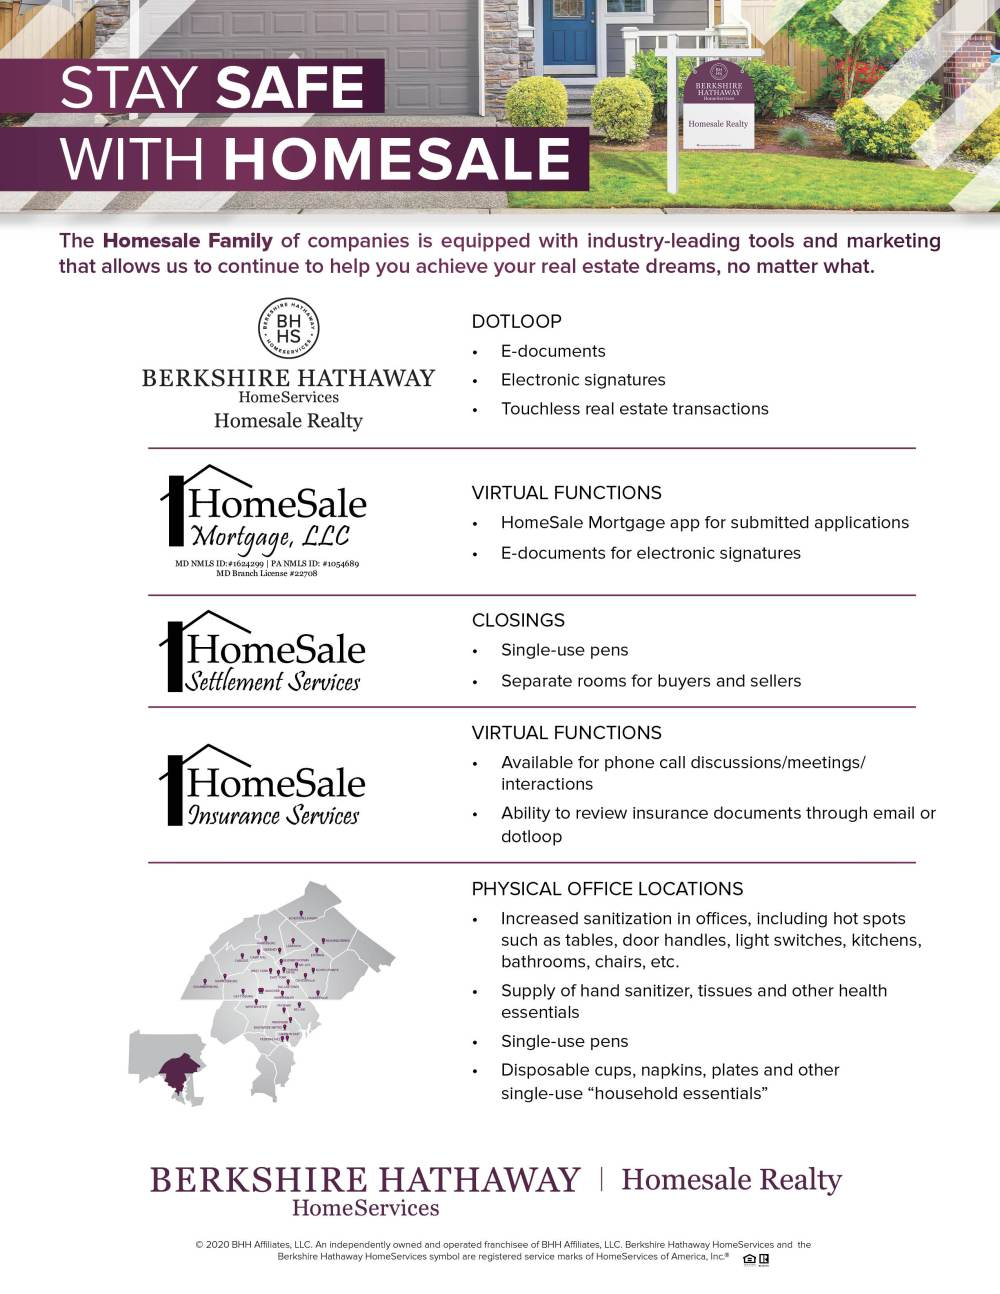 Stay Safe with Homesale